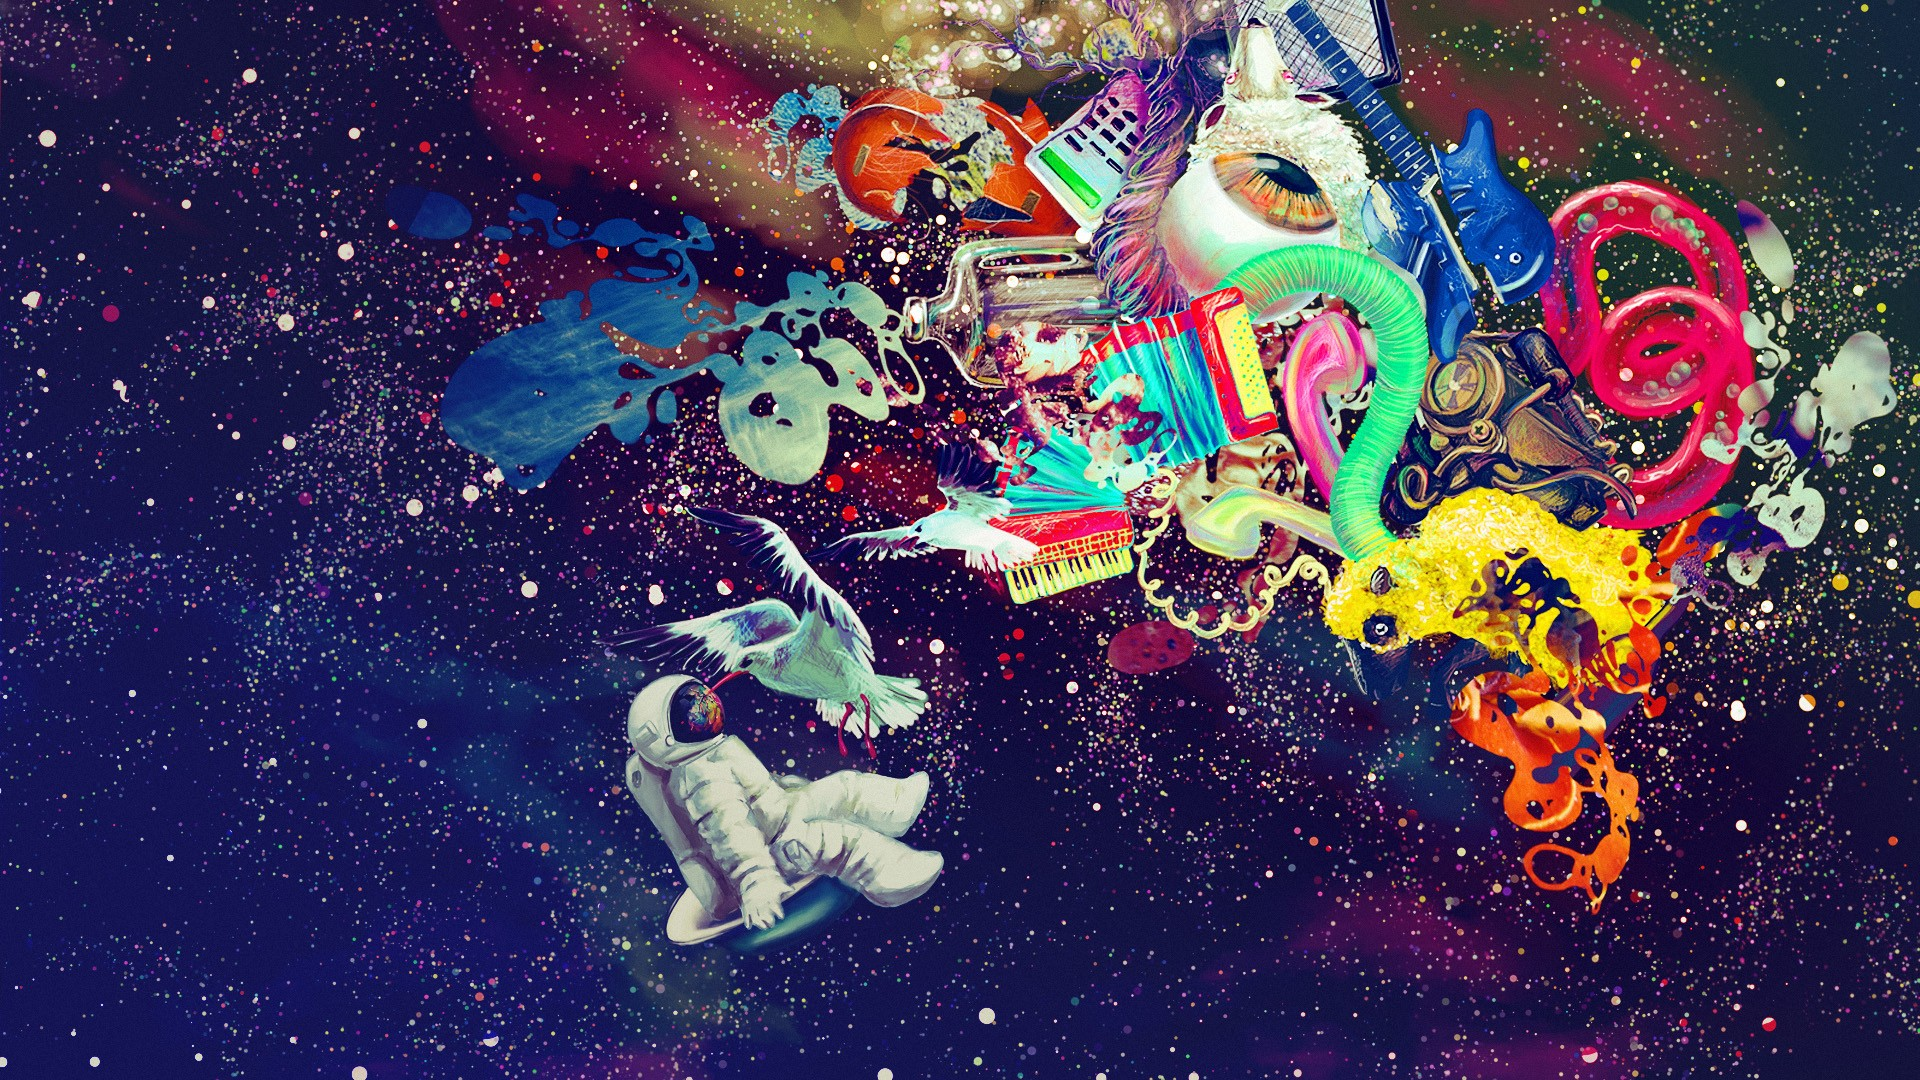 Sokilin design wallpapers trippy wallpapers hd - Psychedelic Computer Wallpapers Desktop Backgrounds 1920x1080 Id